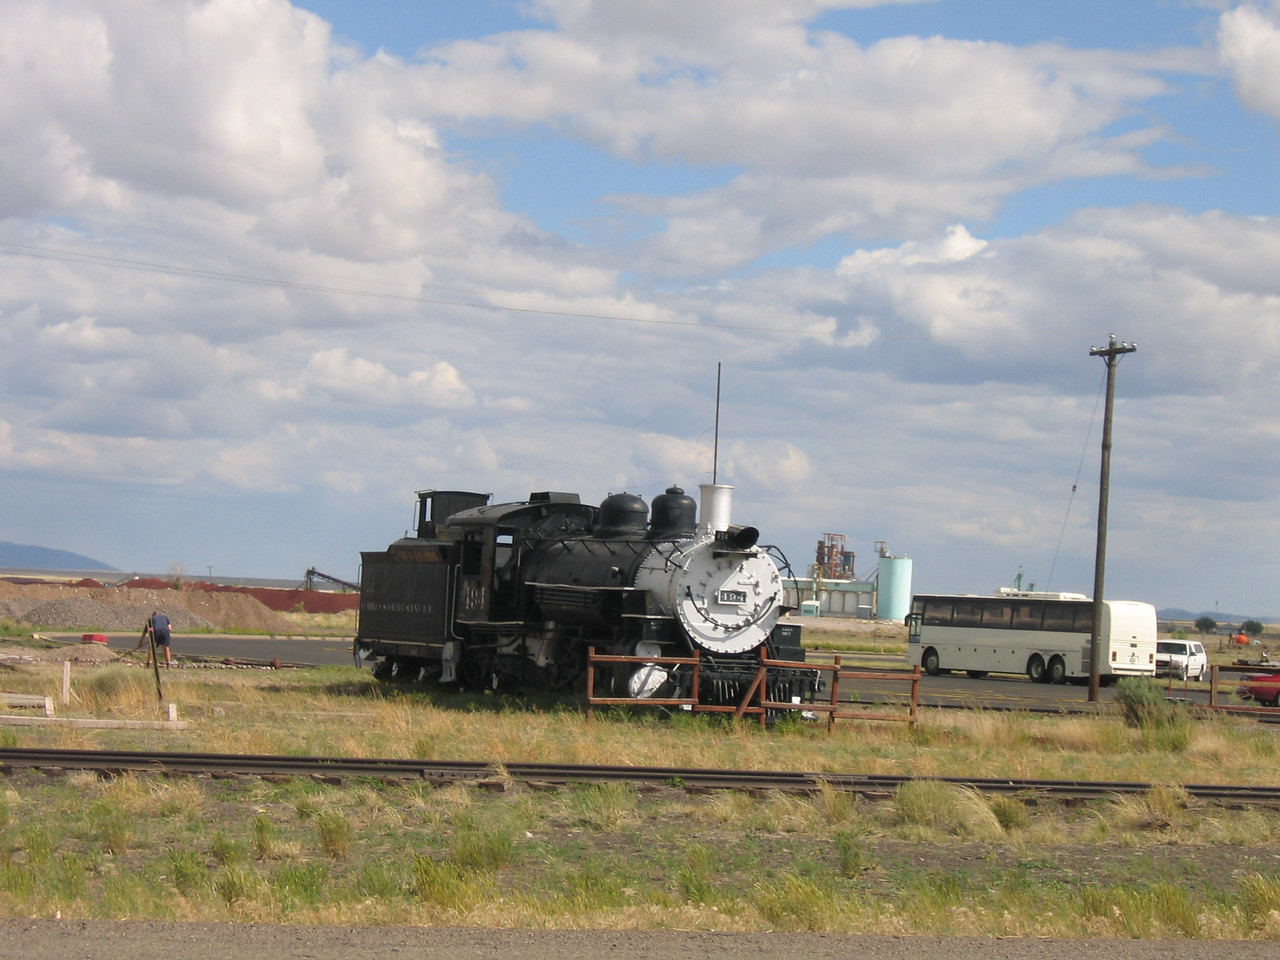 (Click on image to enlarge)<br /> <br /> Cumbres is one terminus of the Cumbres and Toltec narrow gauge railroad.  Here's one of the engines on display.